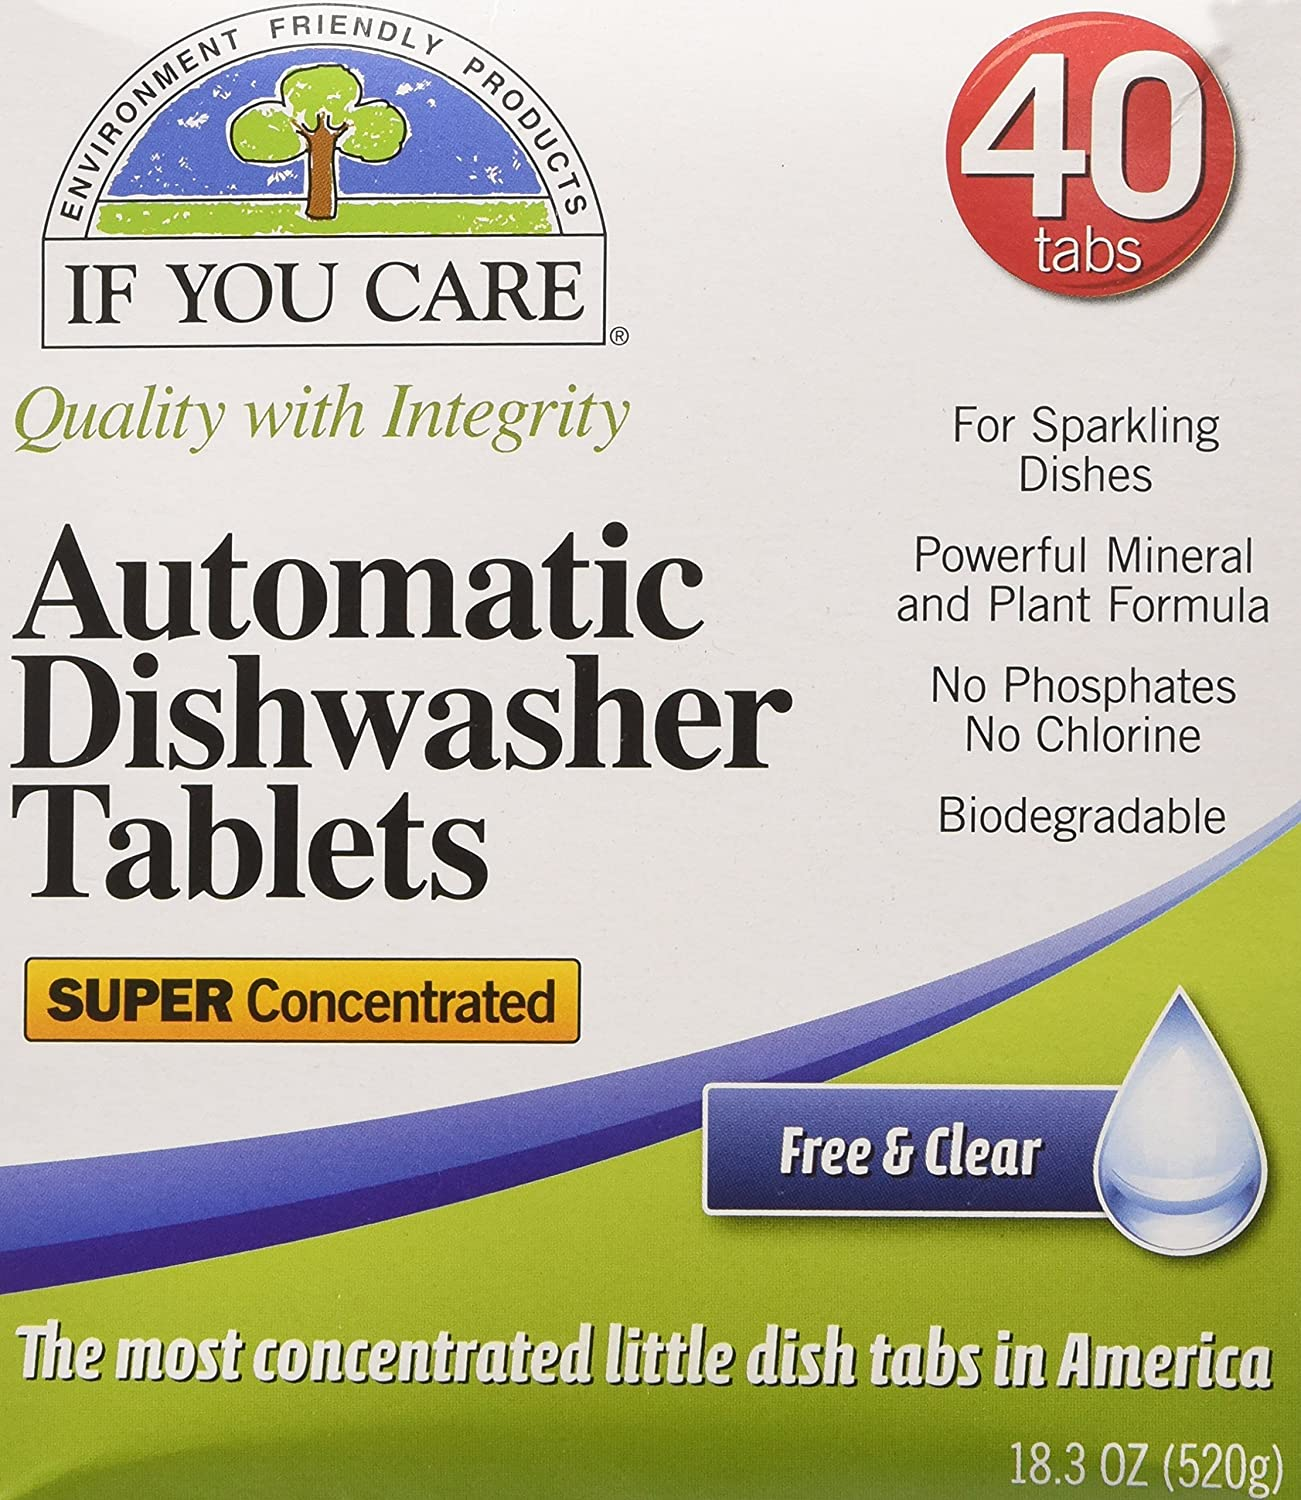 IF YOU CARE Automatic Dishwasher Tablets, 40 Count J25089